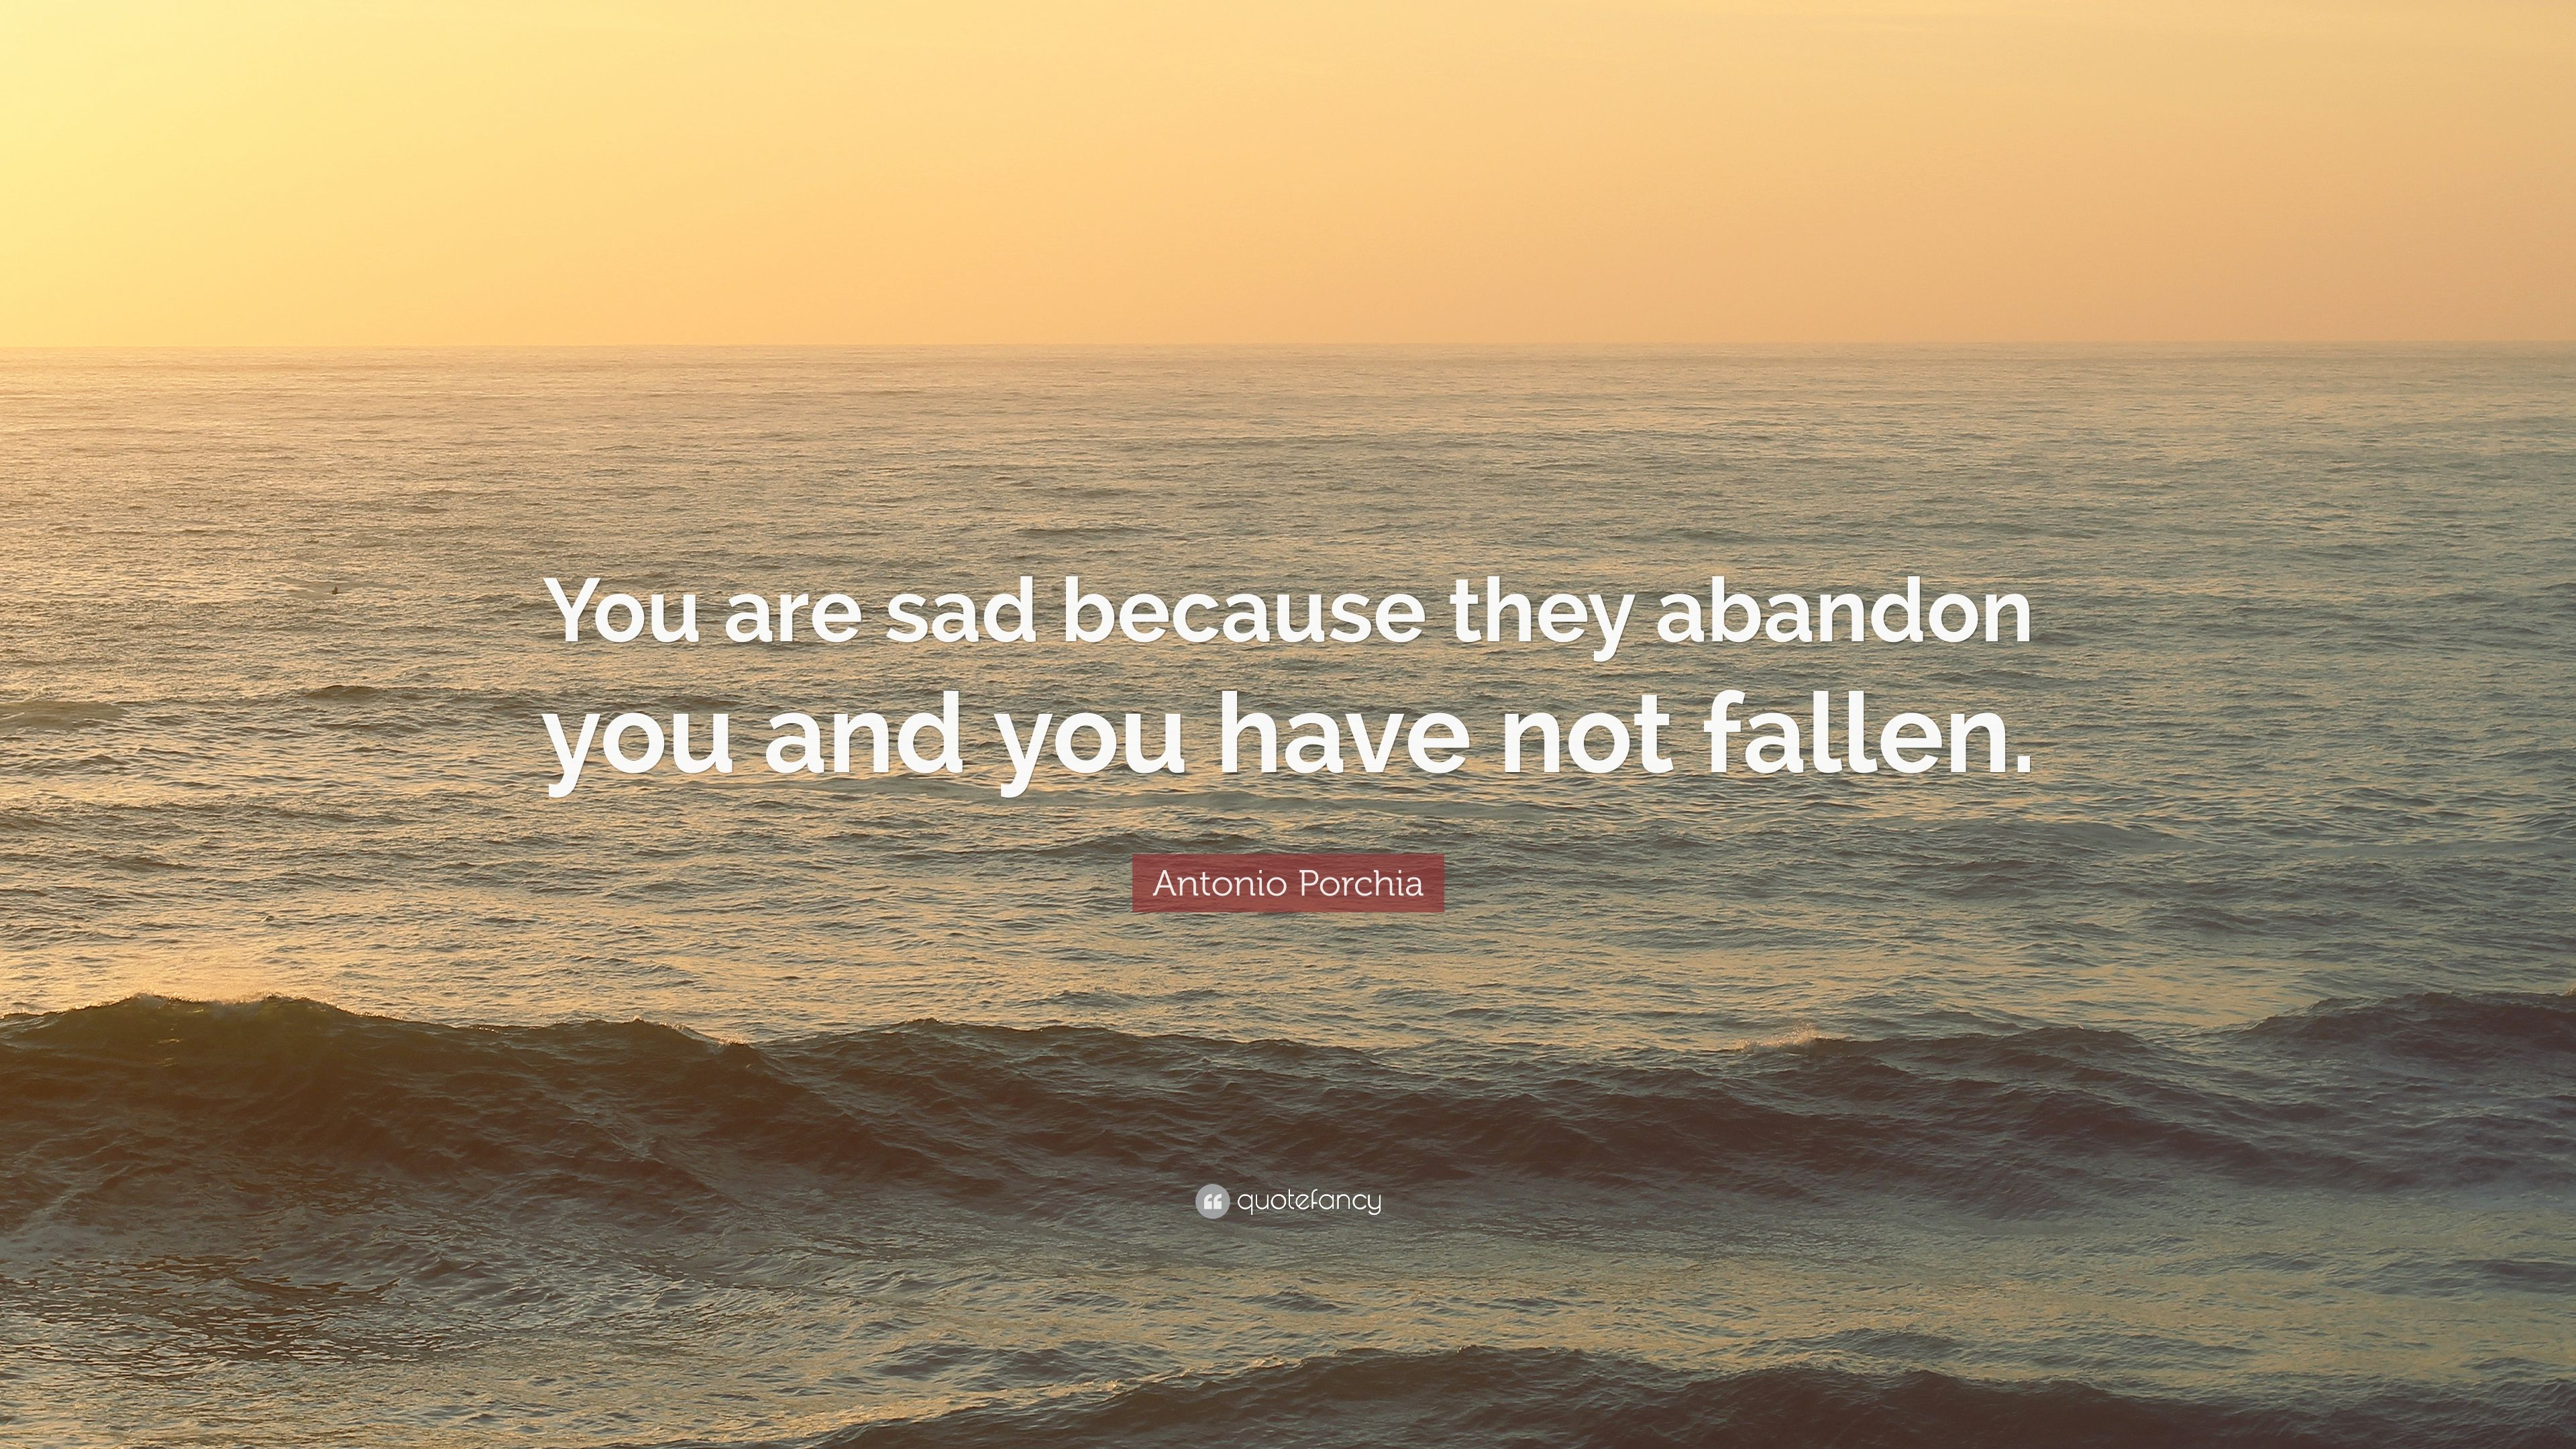 Antonio Porchia Quote You Are Sad Because They Abandon You And You Have Not Fallen 7 Wallpapers Quotefancy